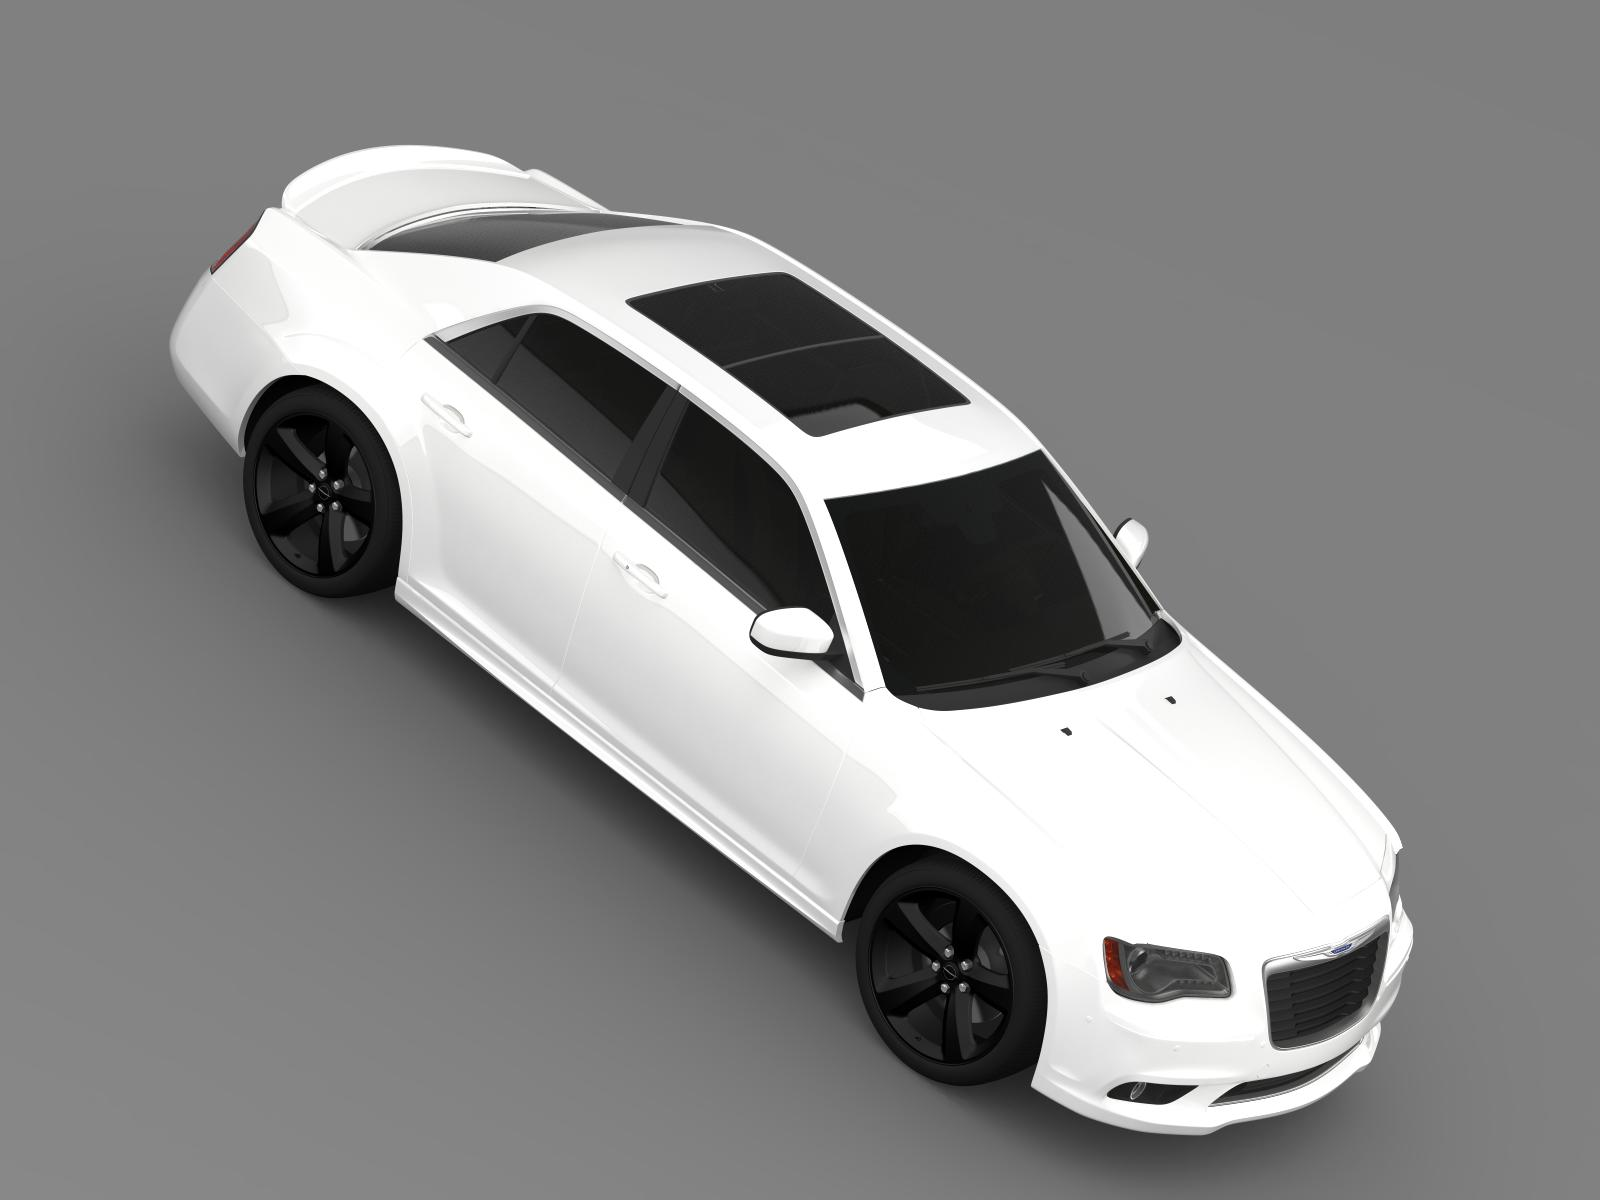 Wonderful Chrysler 300S 2013 3d Model 3ds Max Fbx C4d Lwo Lws Lw Ma Mb Obj